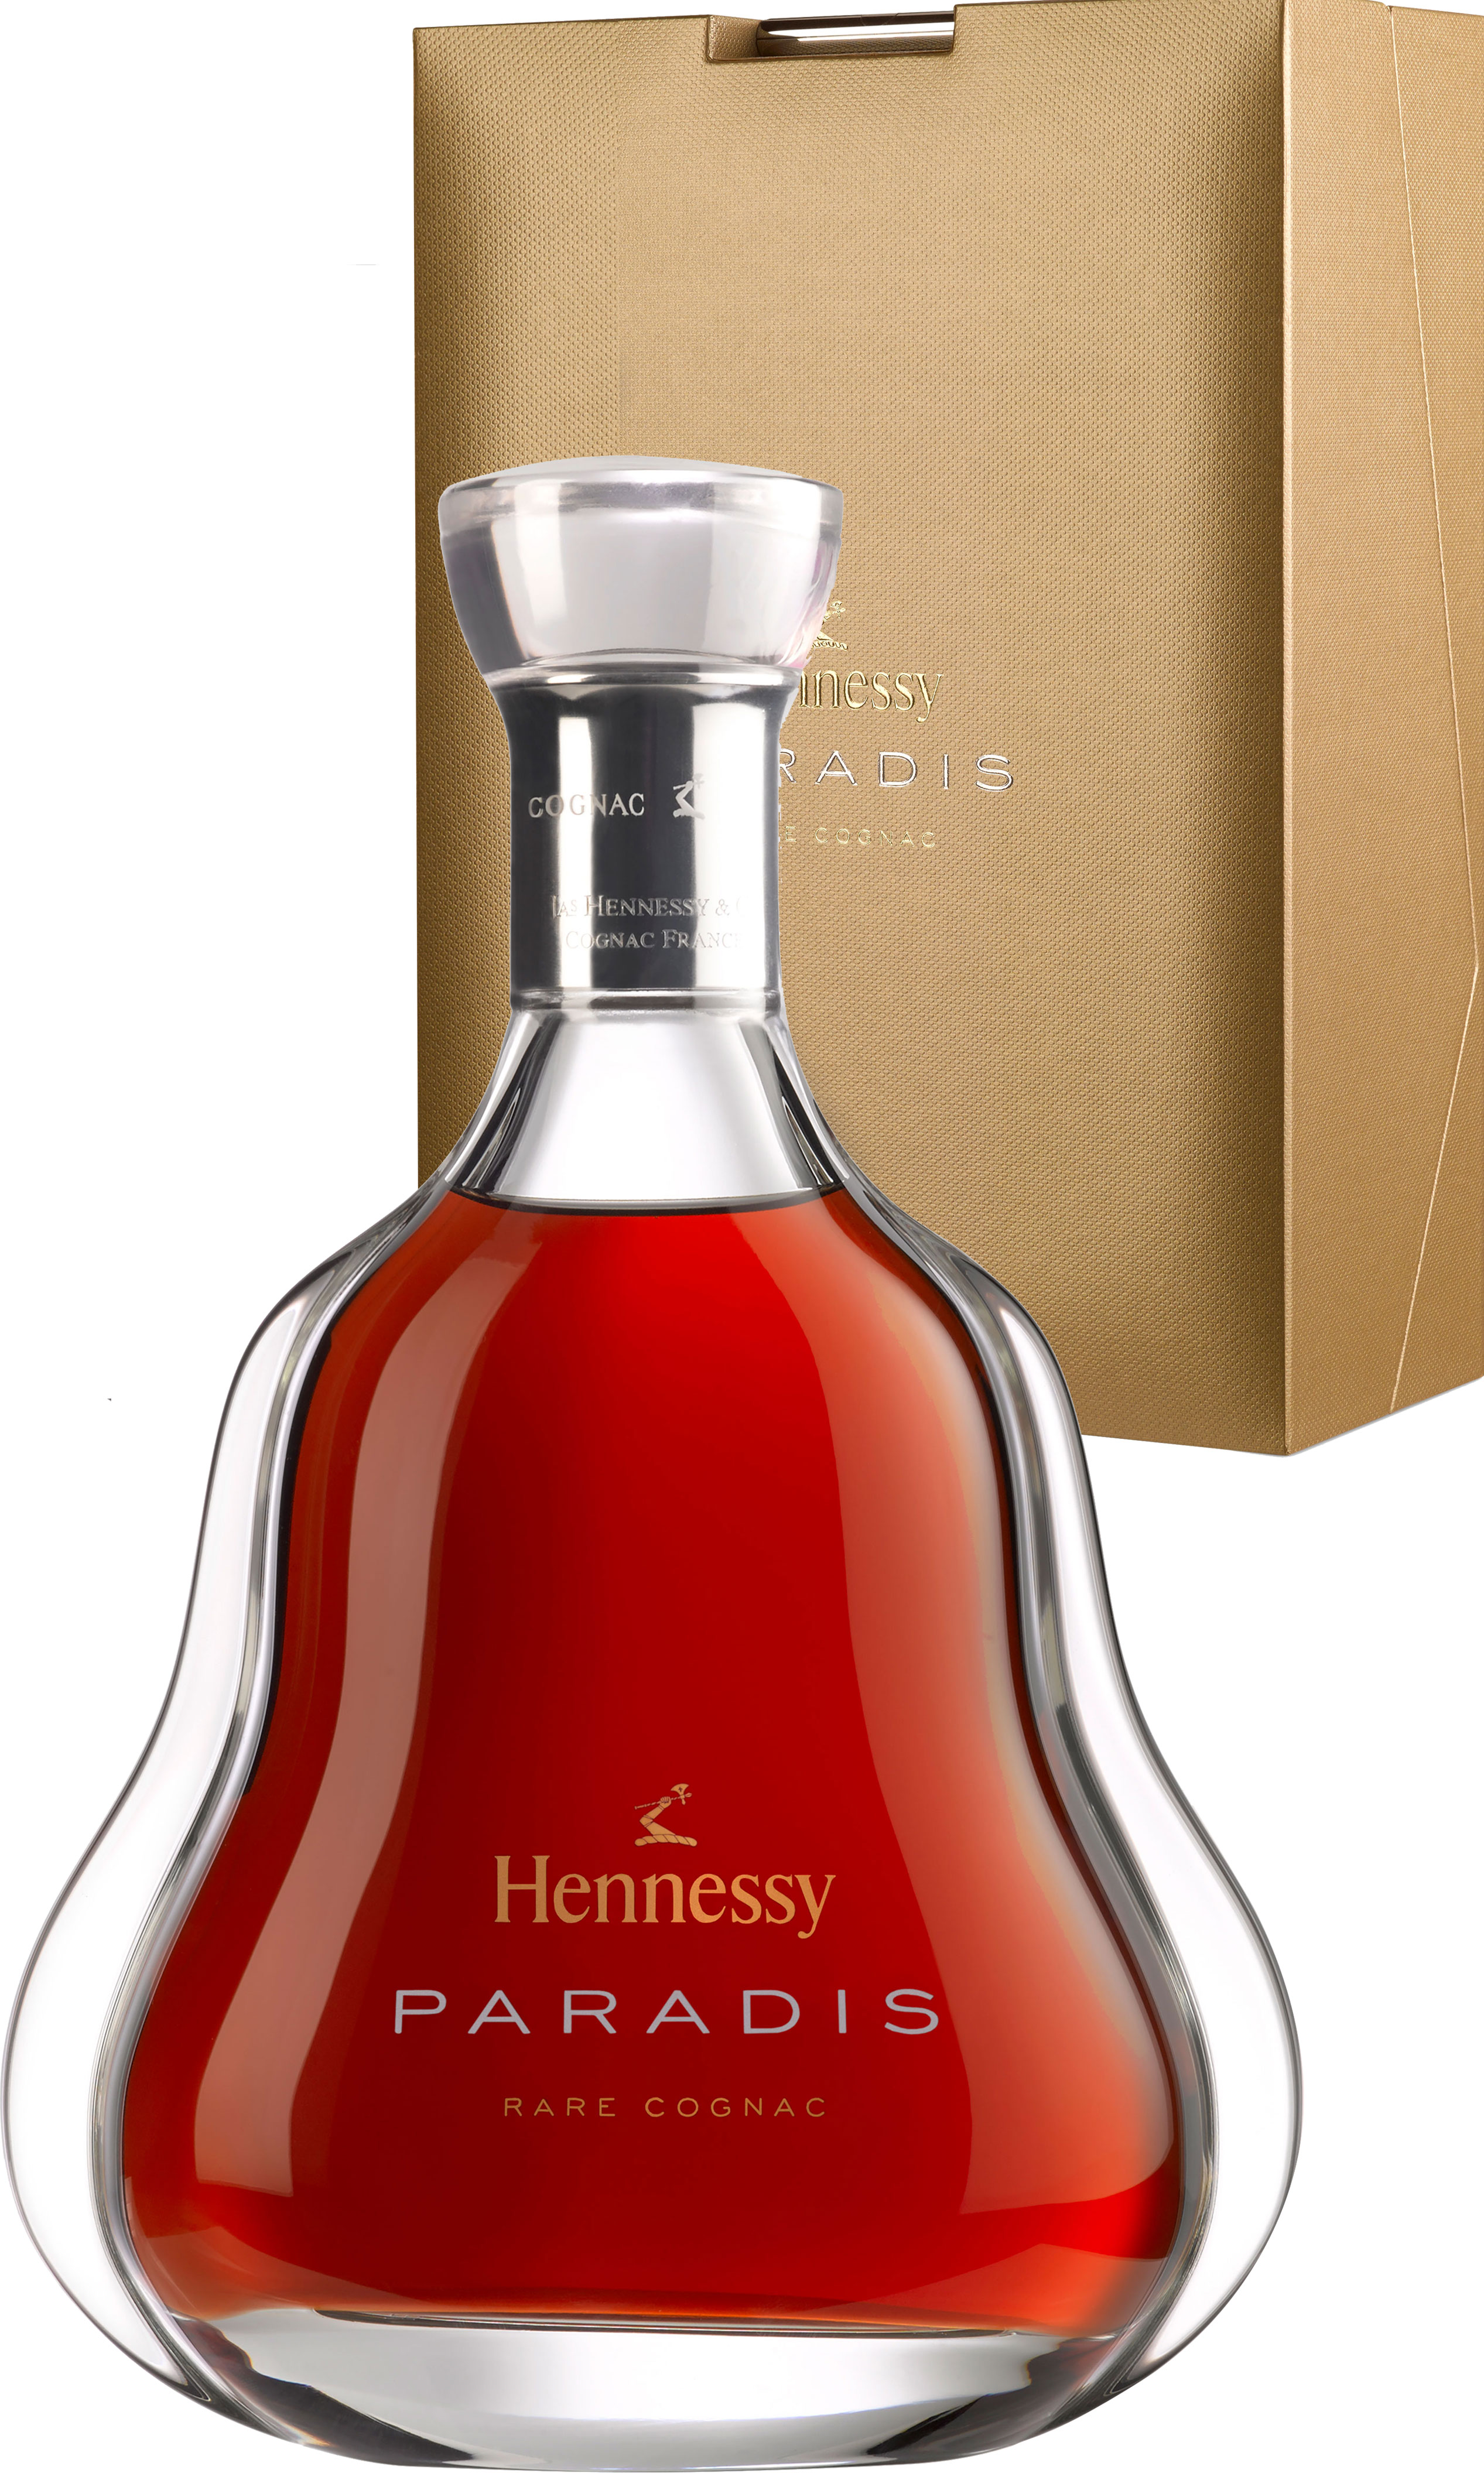 Hennessy - Paradis 70cl Bottle